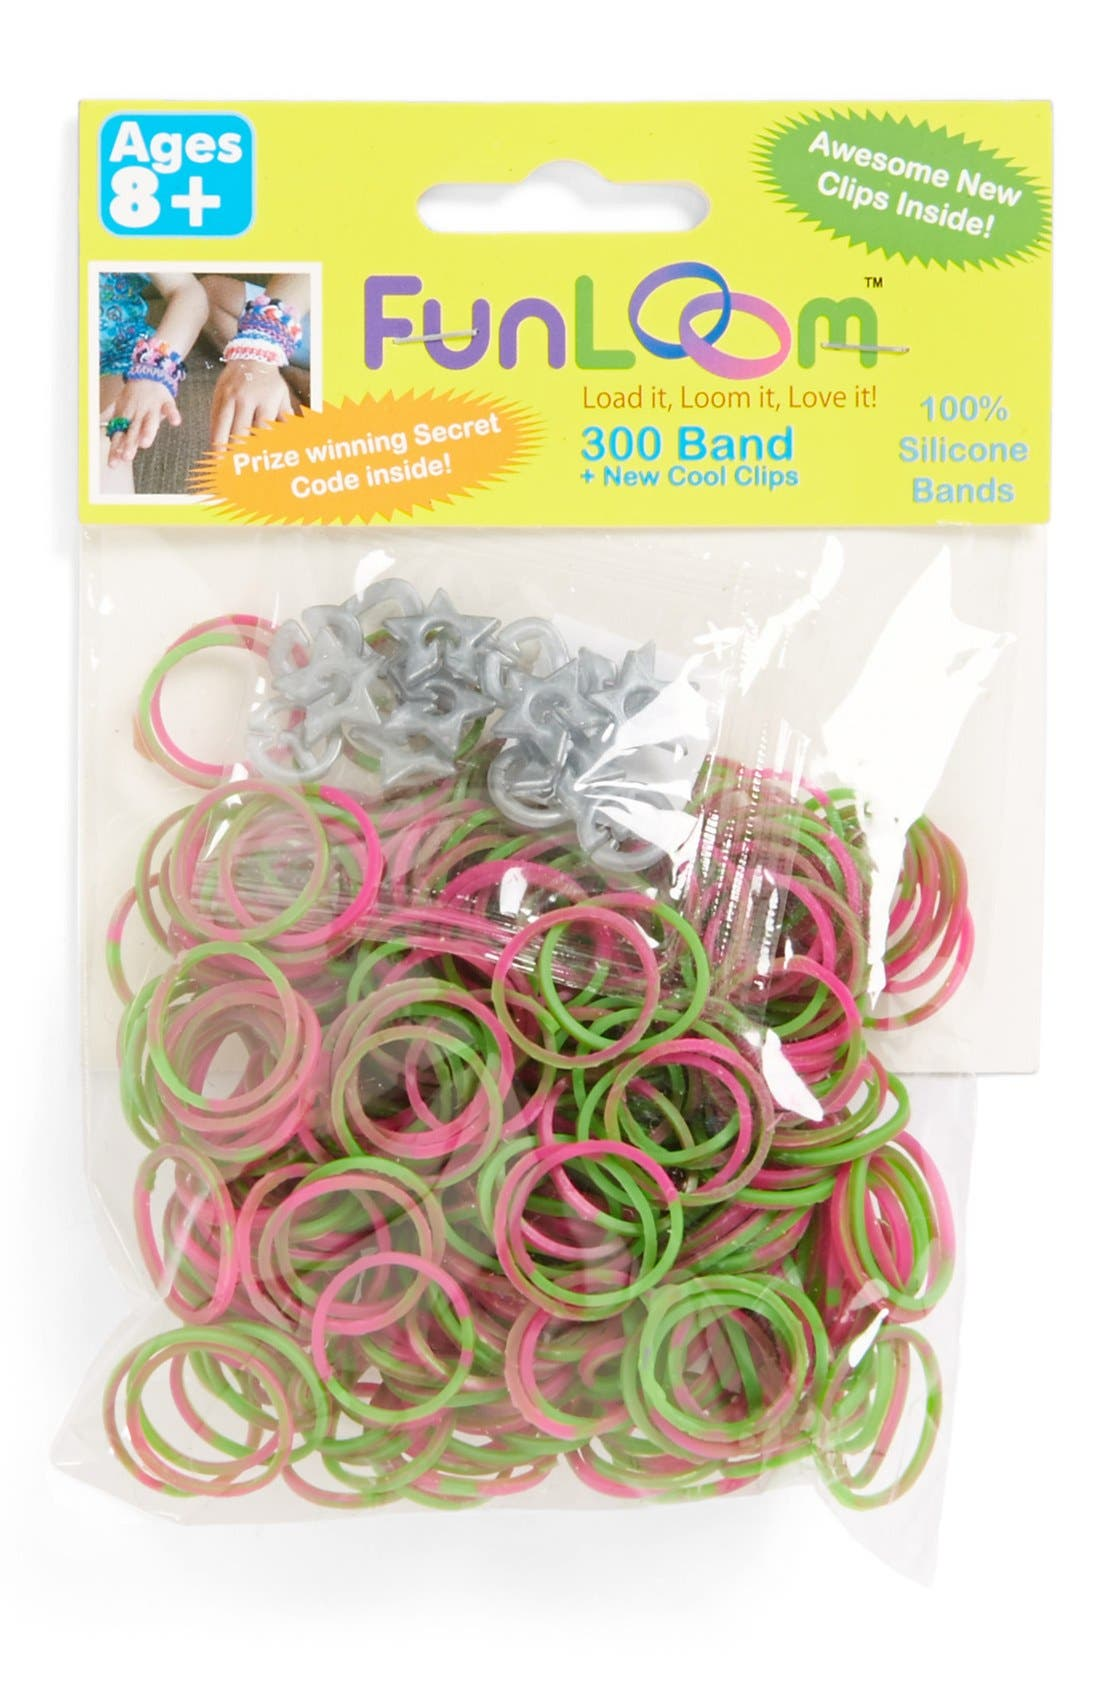 Alternate Image 1 Selected - FunLoom Pink & Green Swirl Silicone Bands (300-Pack)